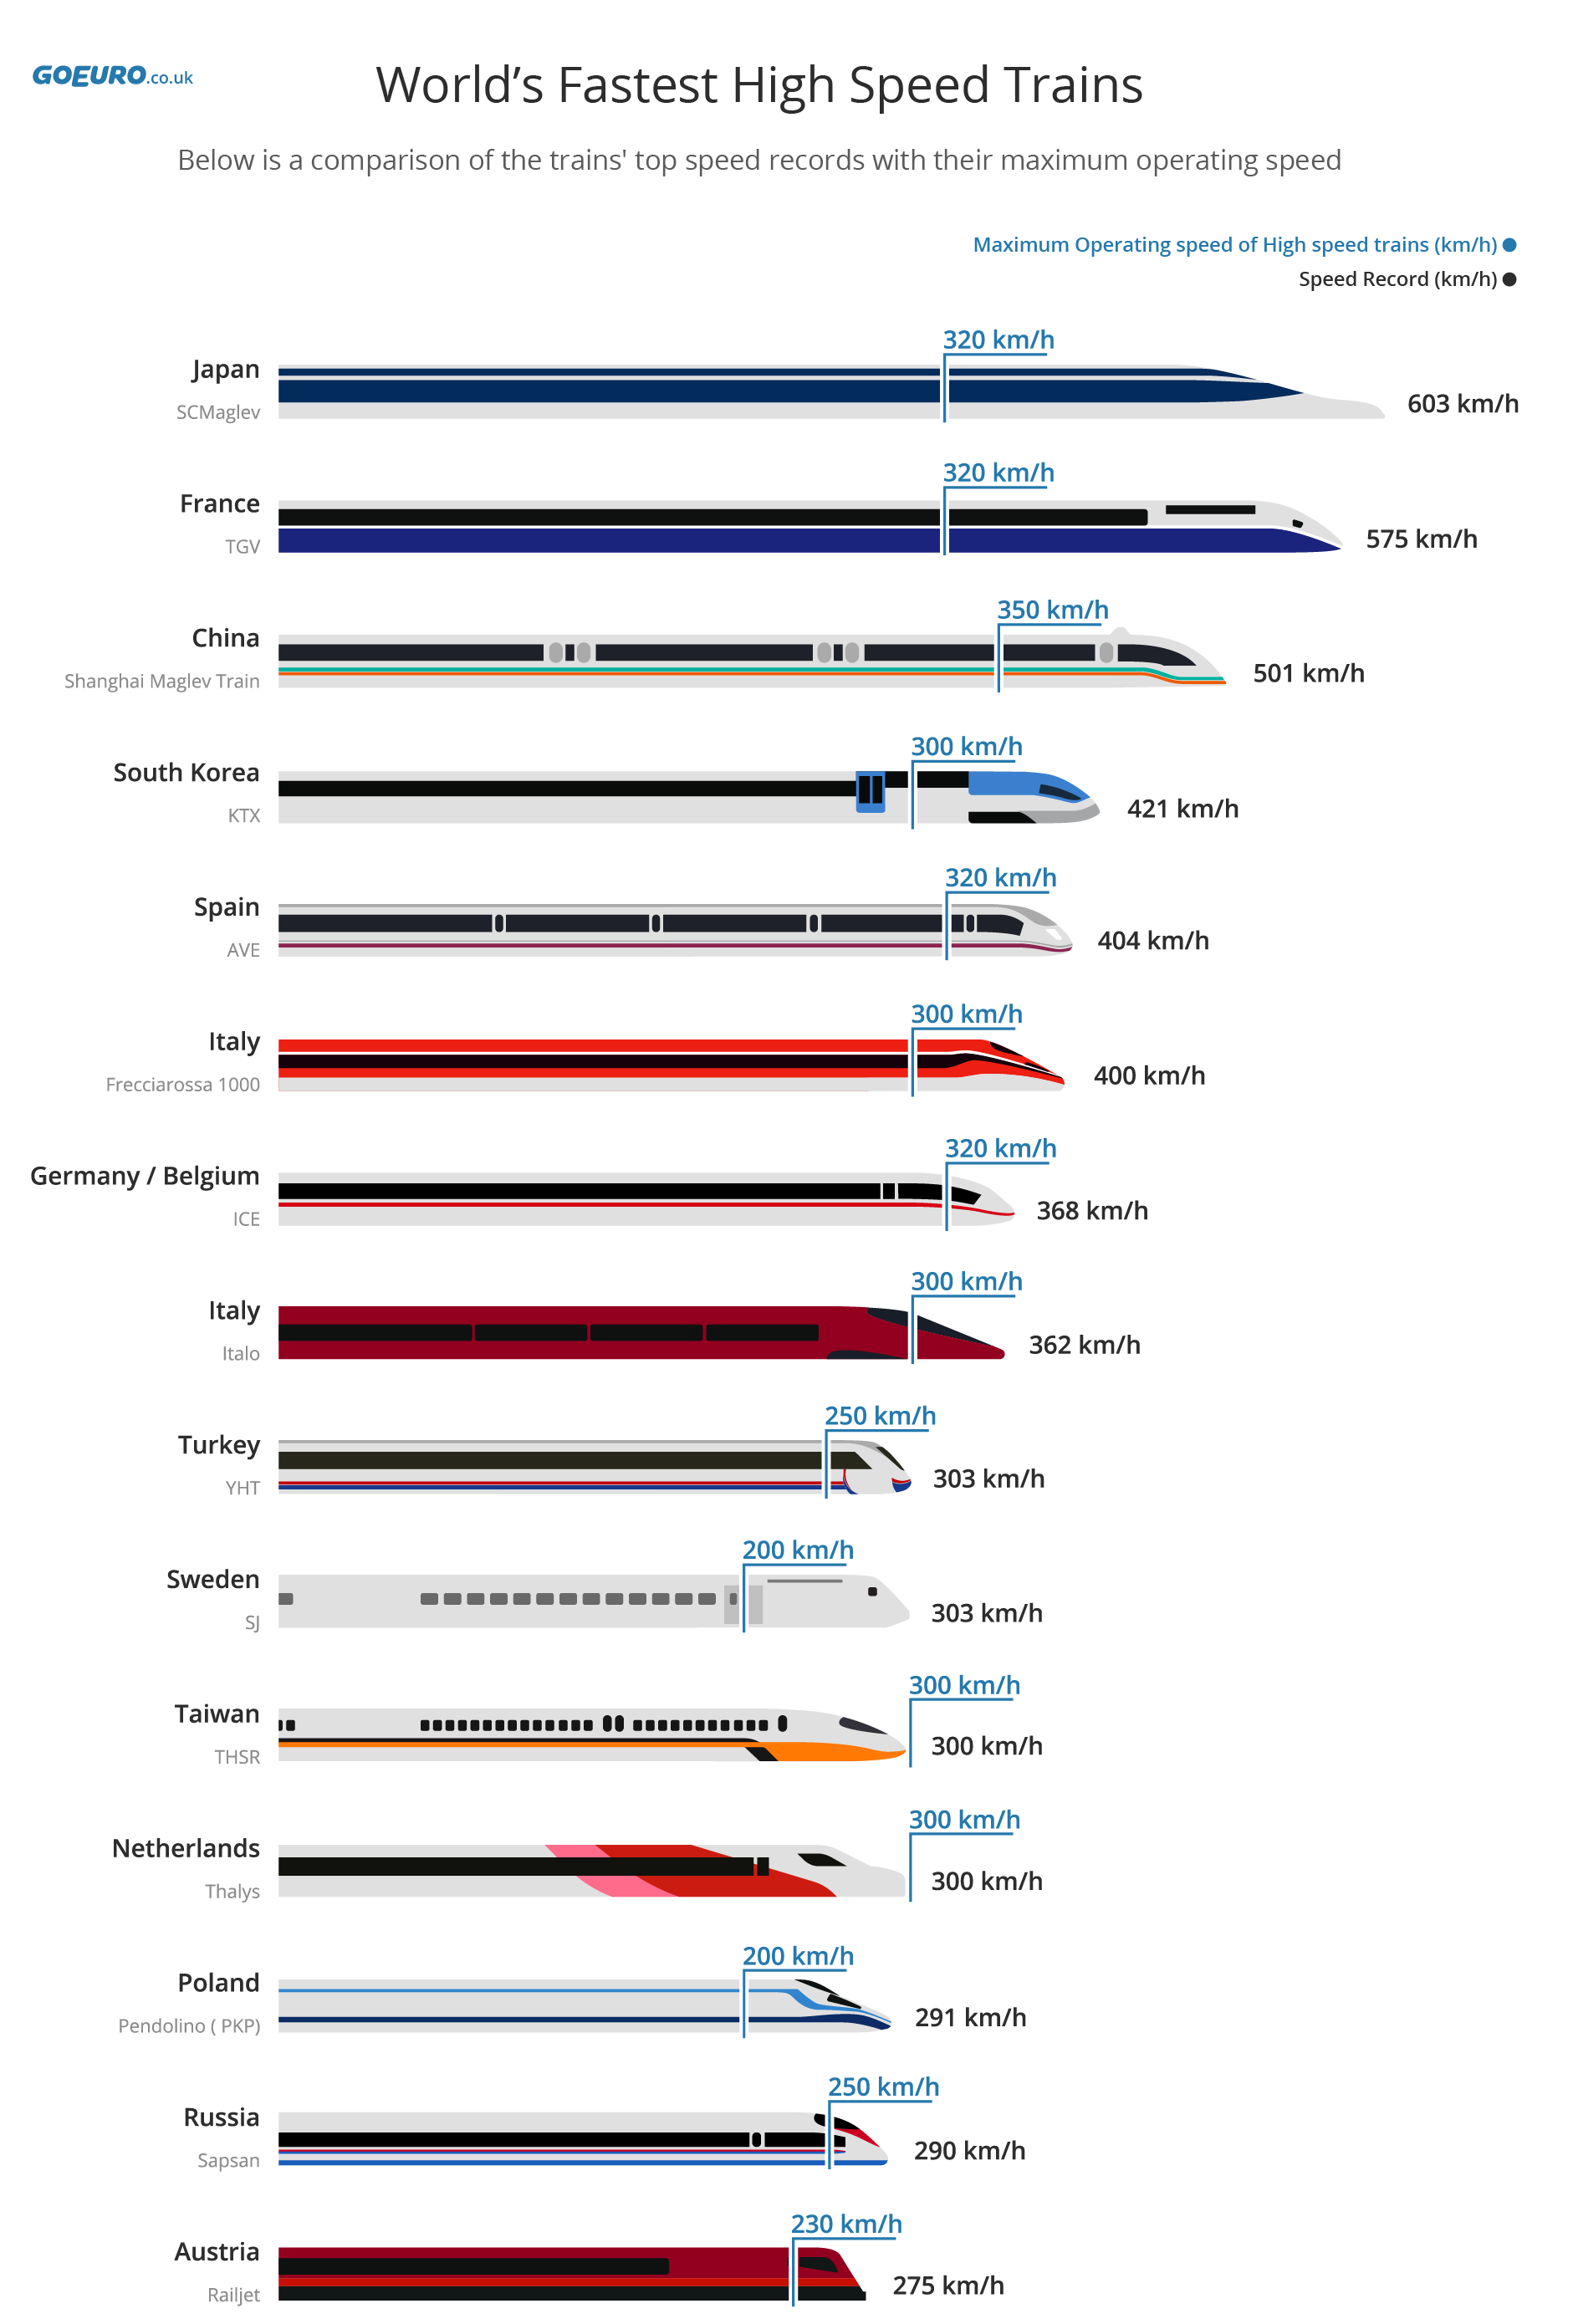 World's Fastest High Speed Trains